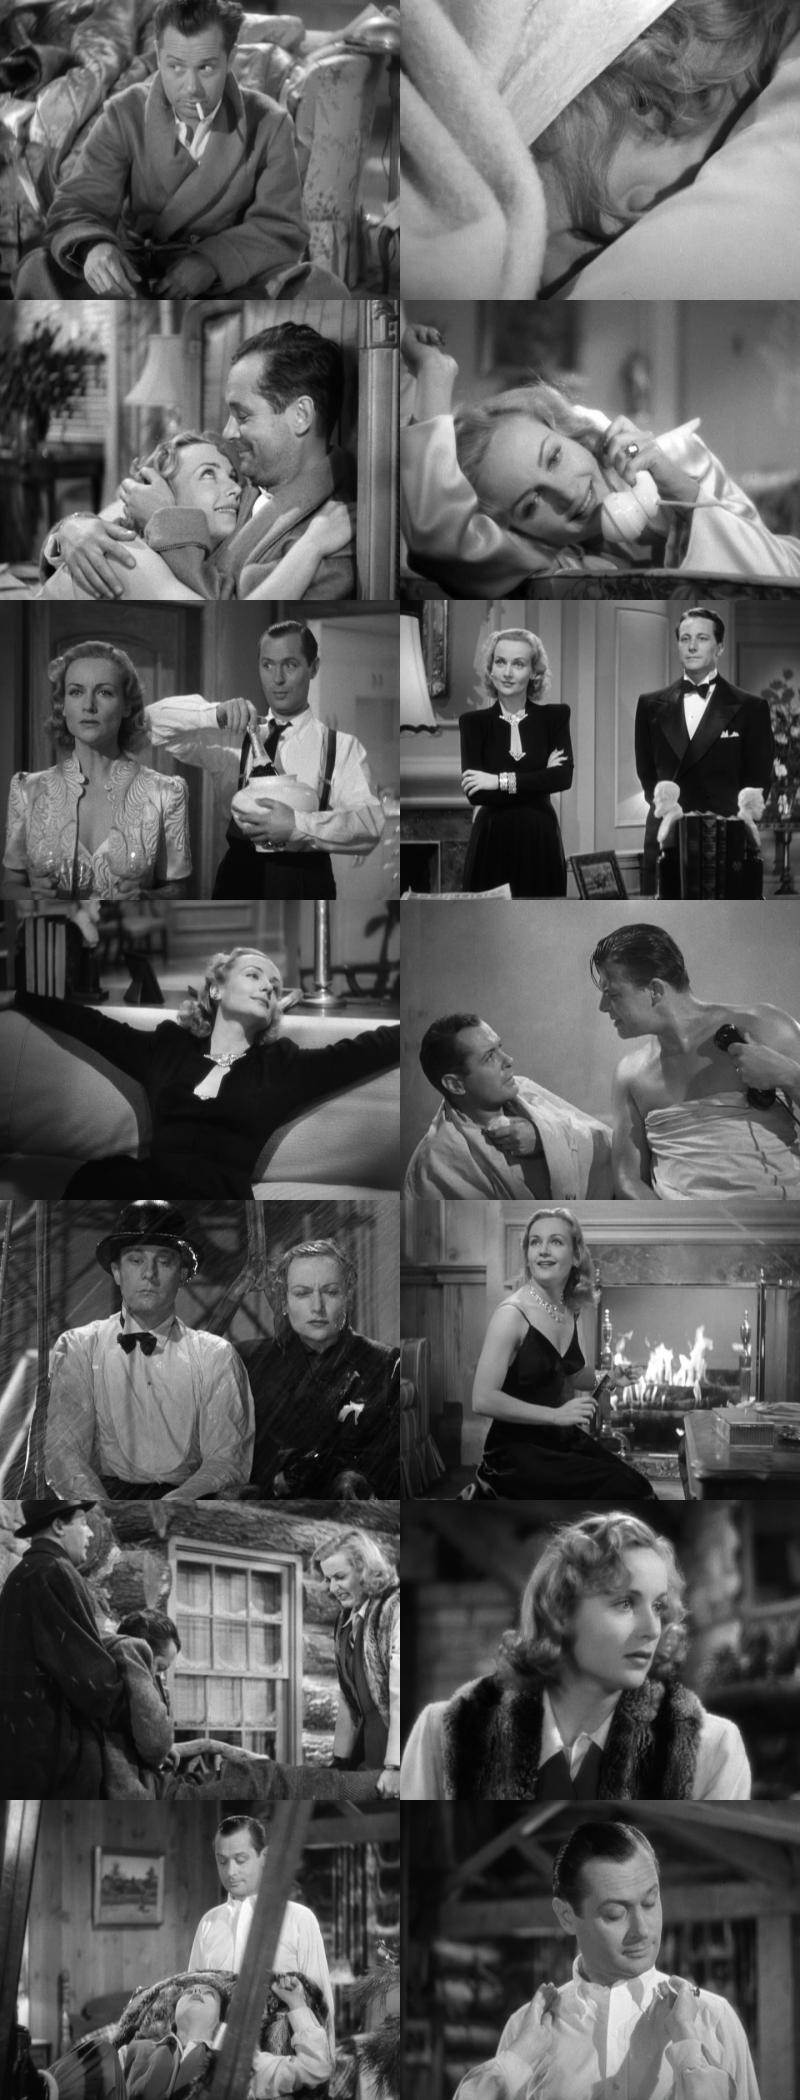 http://watershade.net/public/mr-and-mrs-smith-1941.jpg